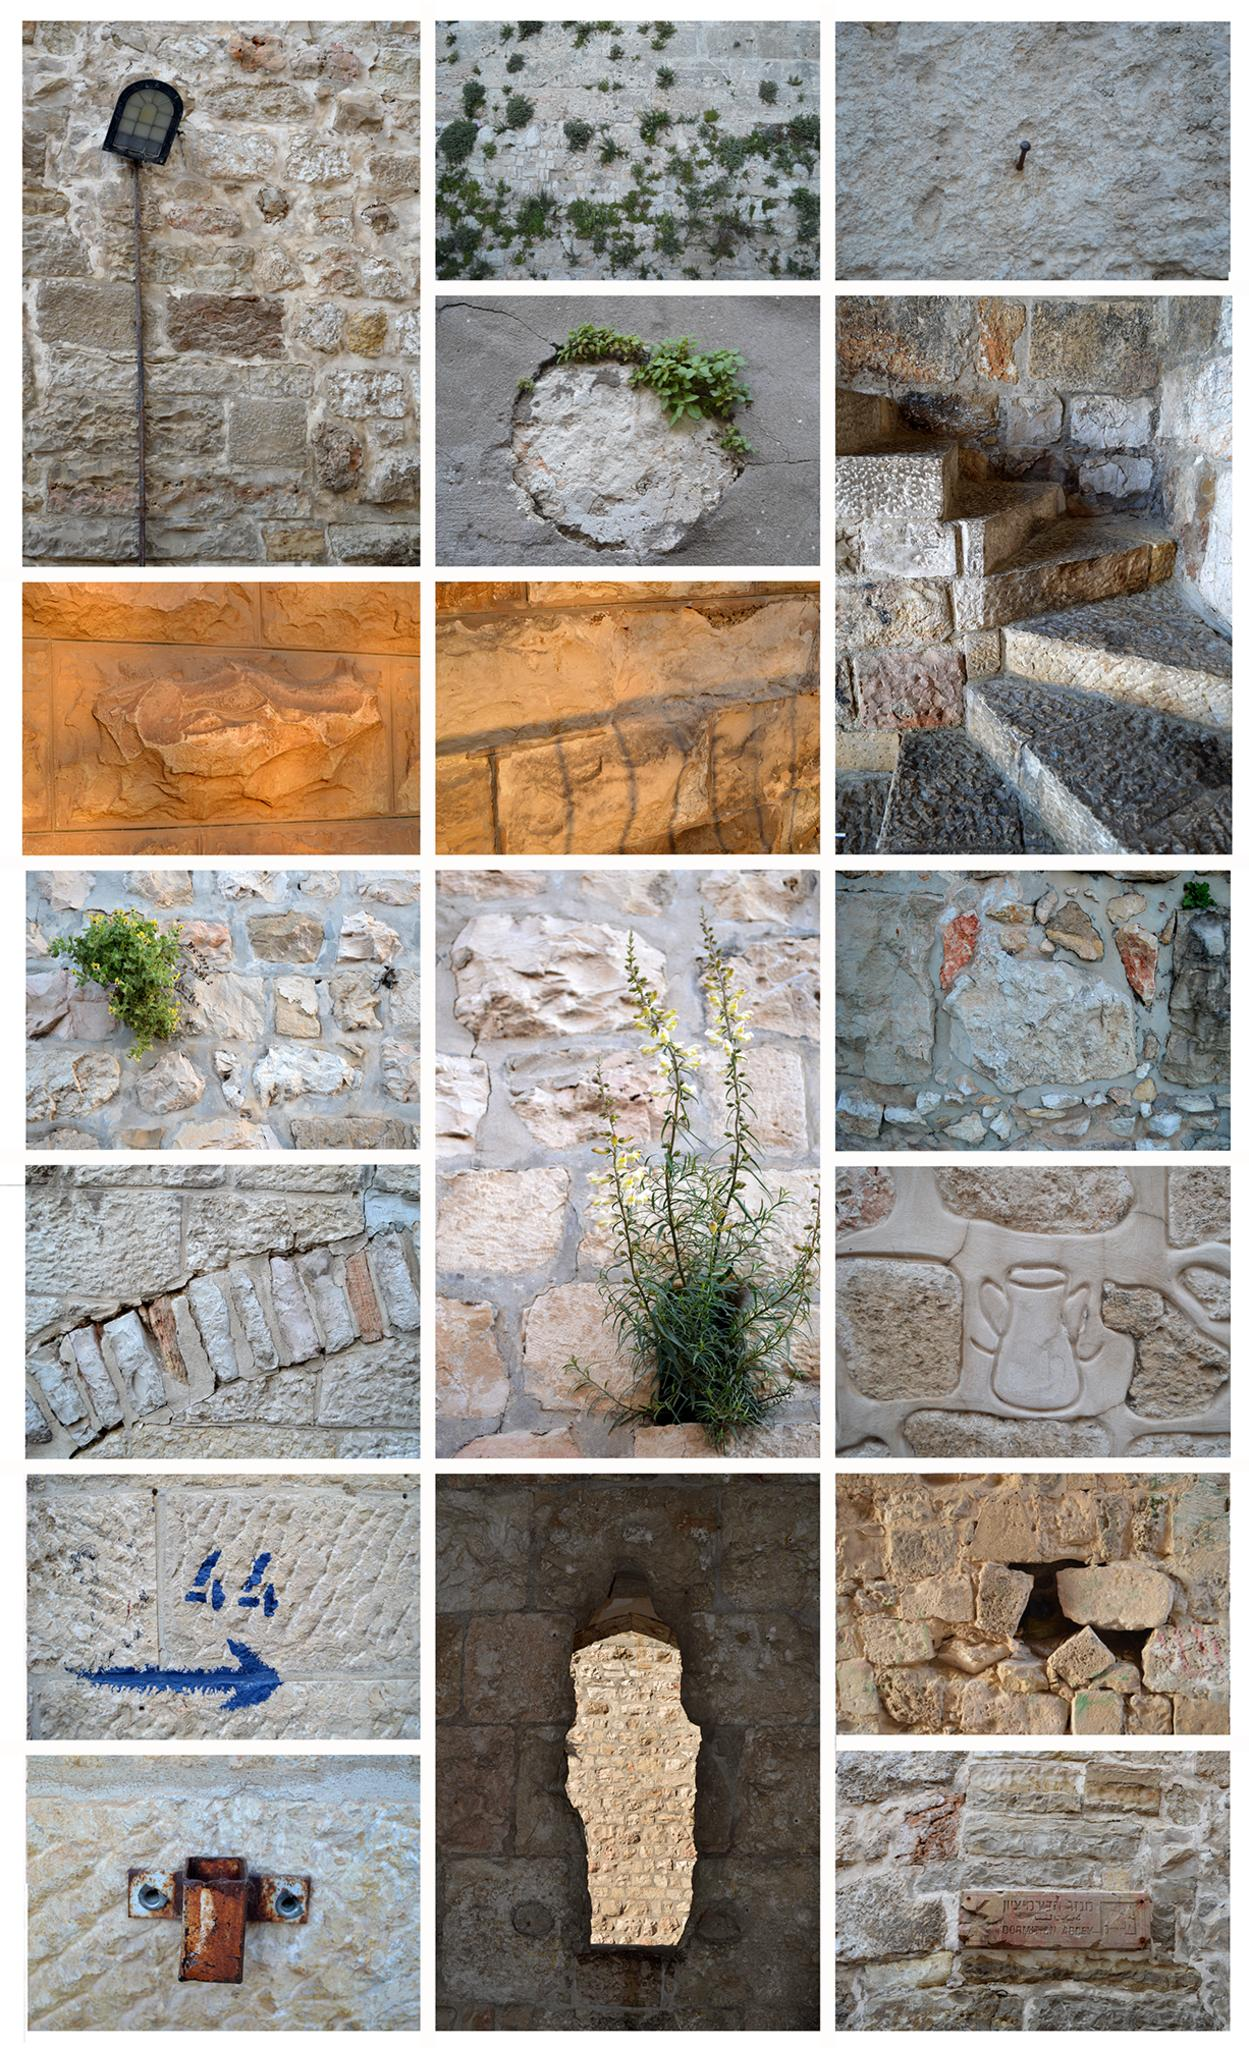 Walls in Jerusalem by Rebecca Tourniaire